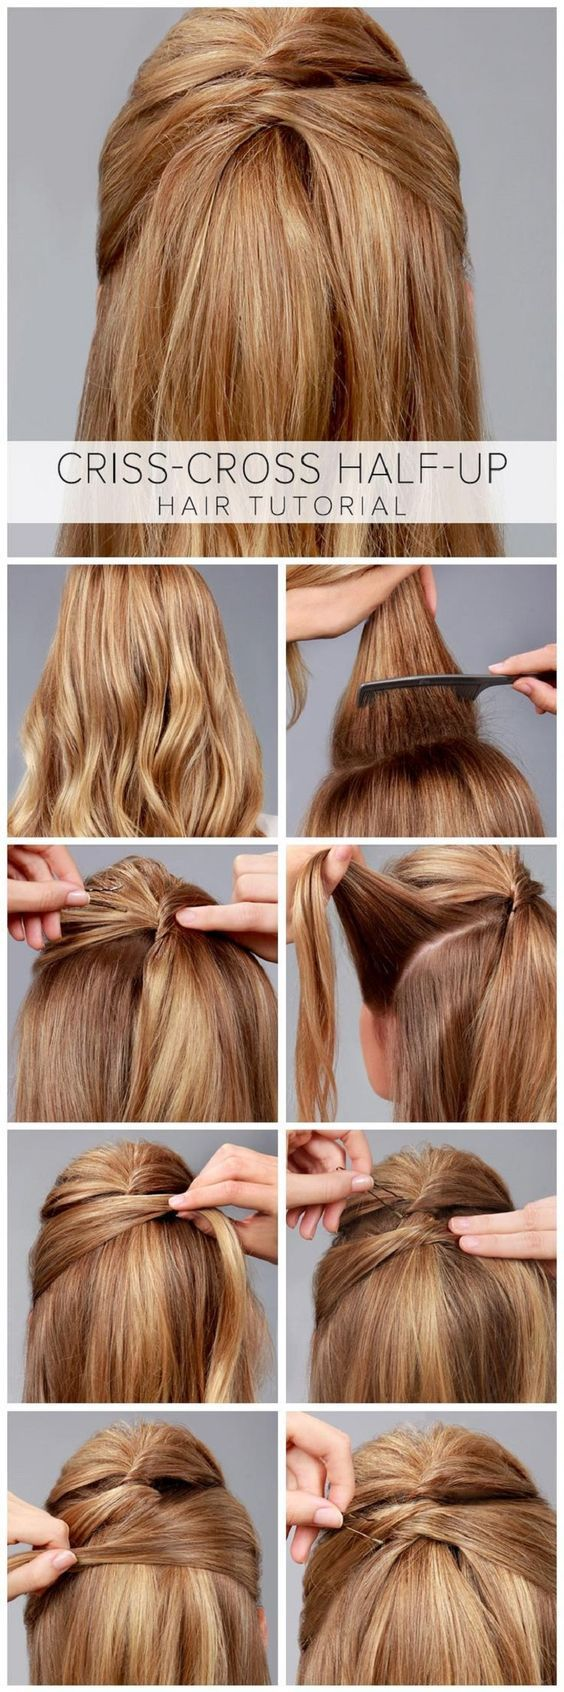 pin by hired design studio on job interview hairstyles | pinterest